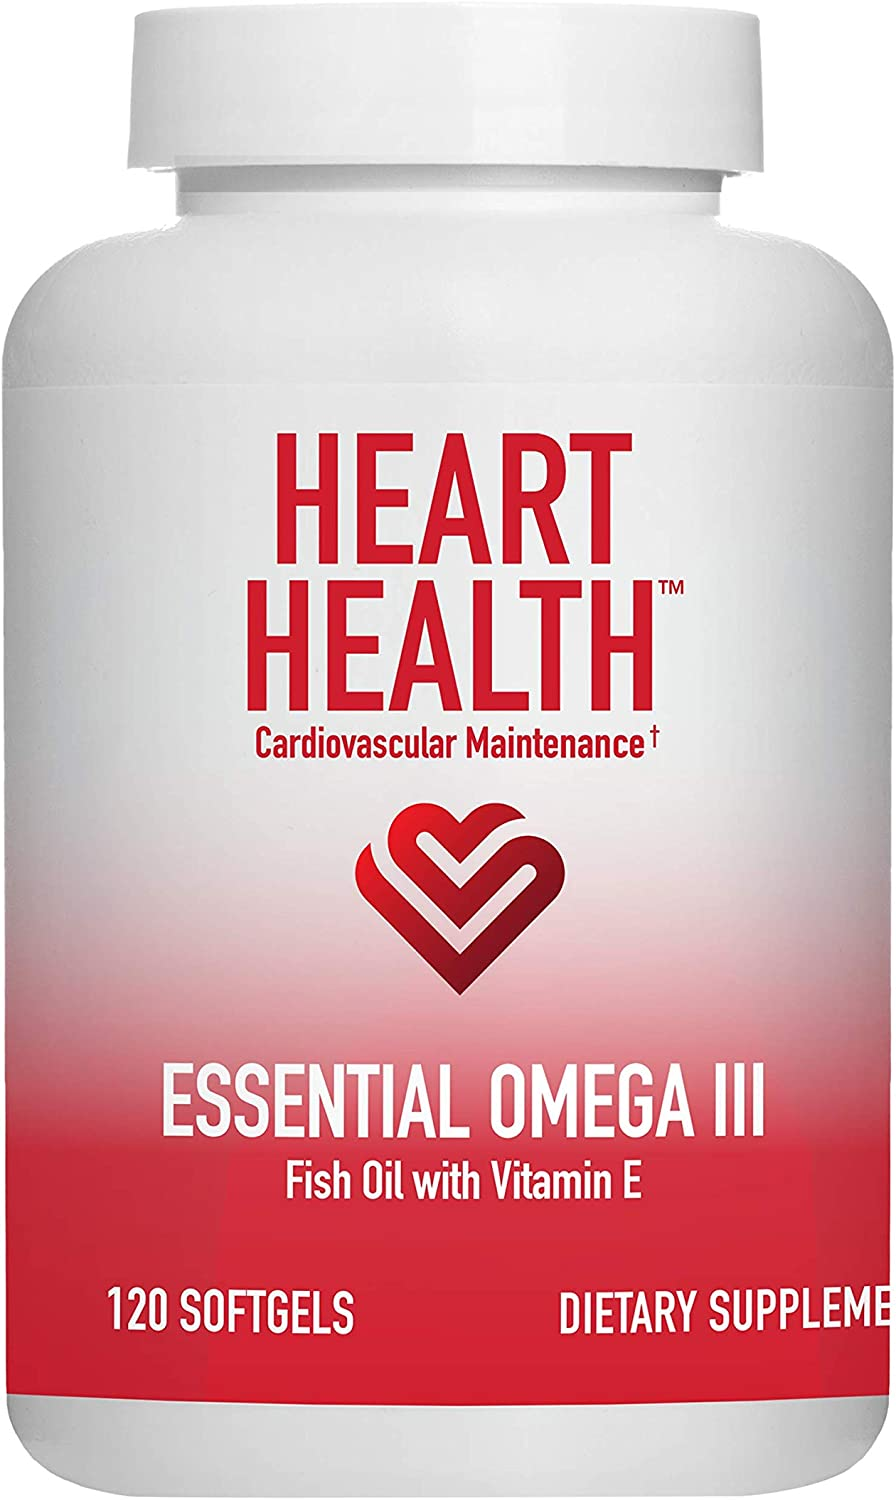 Heart Product Health Essential Omega III Fish Helps with Vitamin E Oil Finally resale start